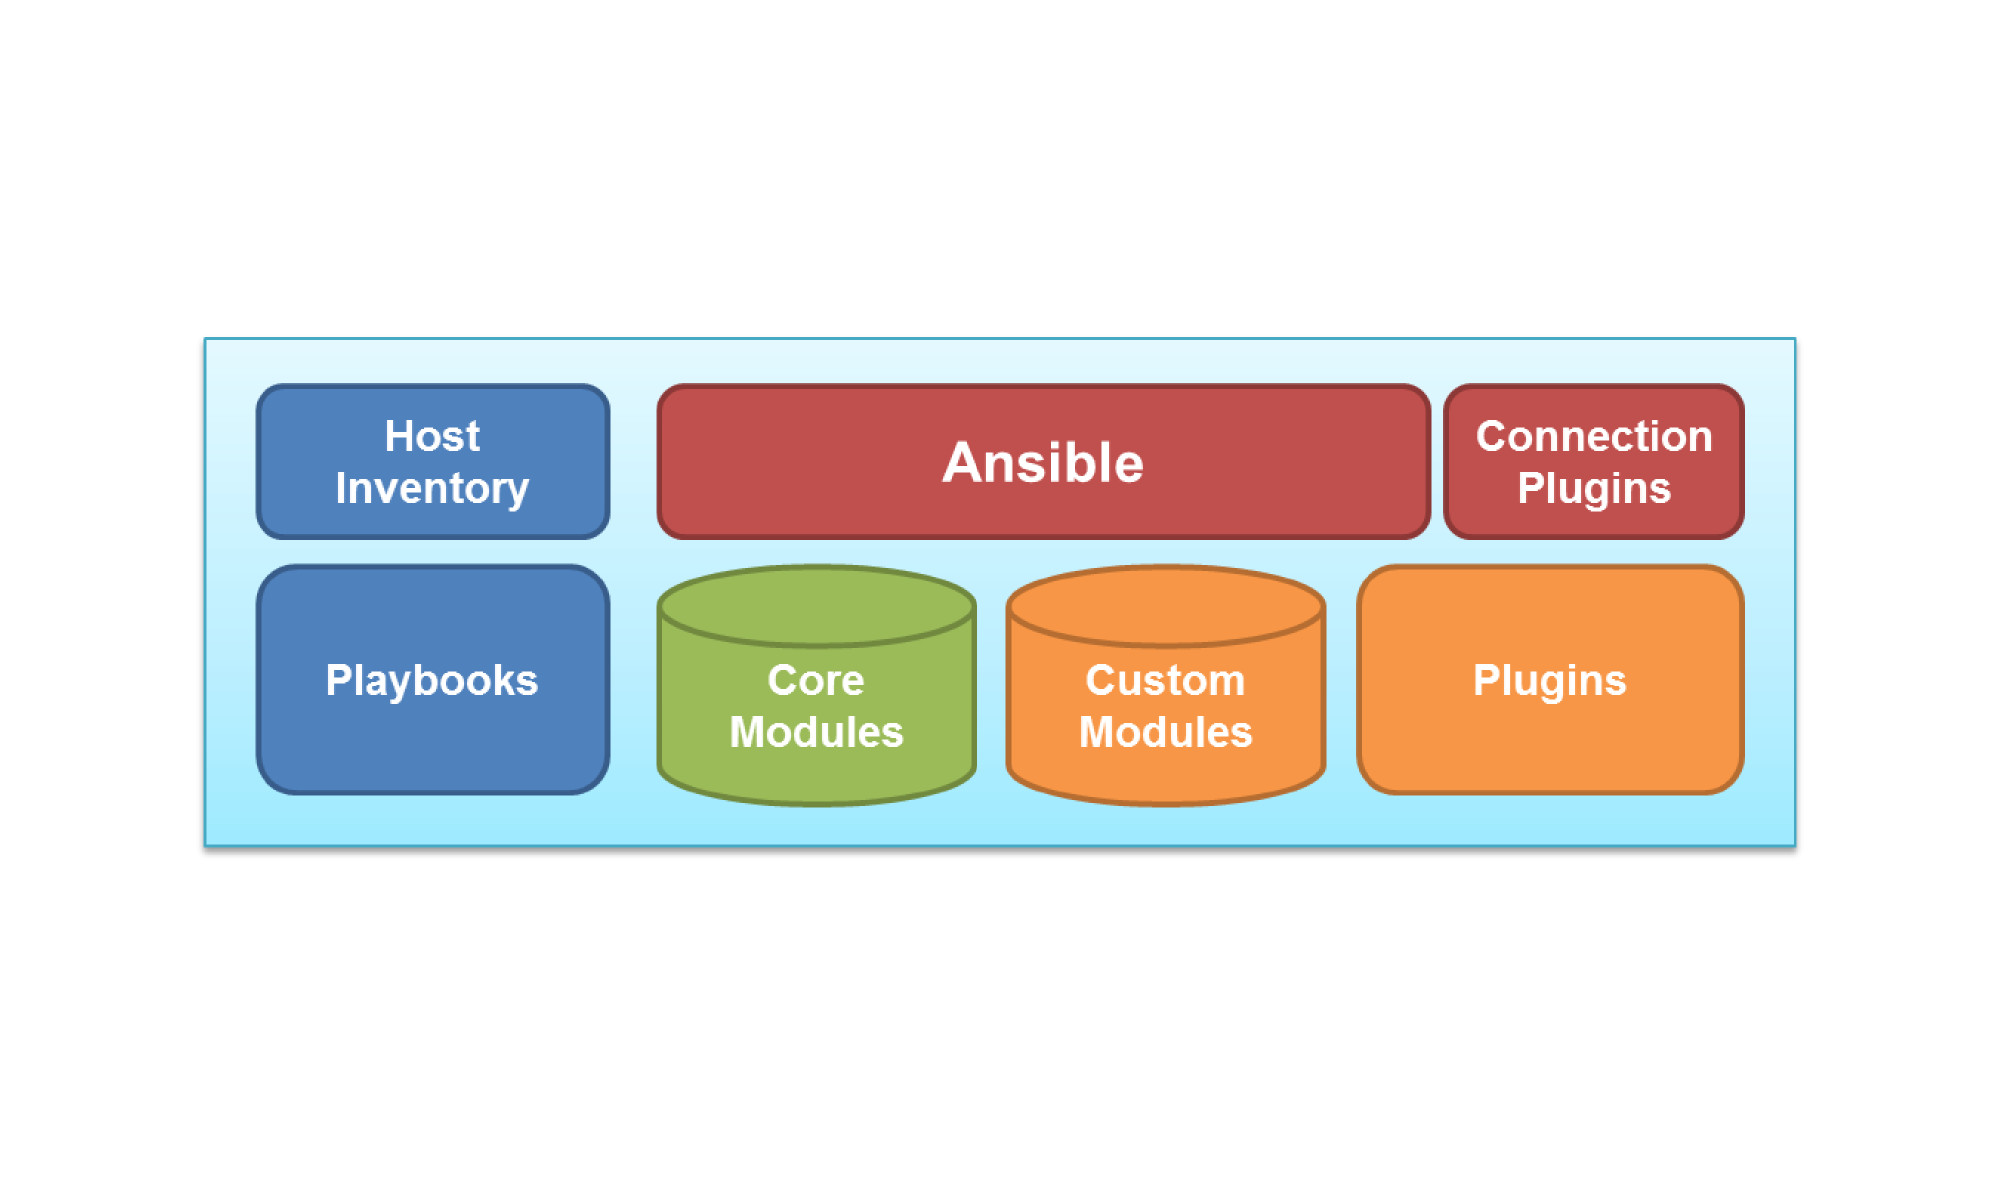 Ansible stack